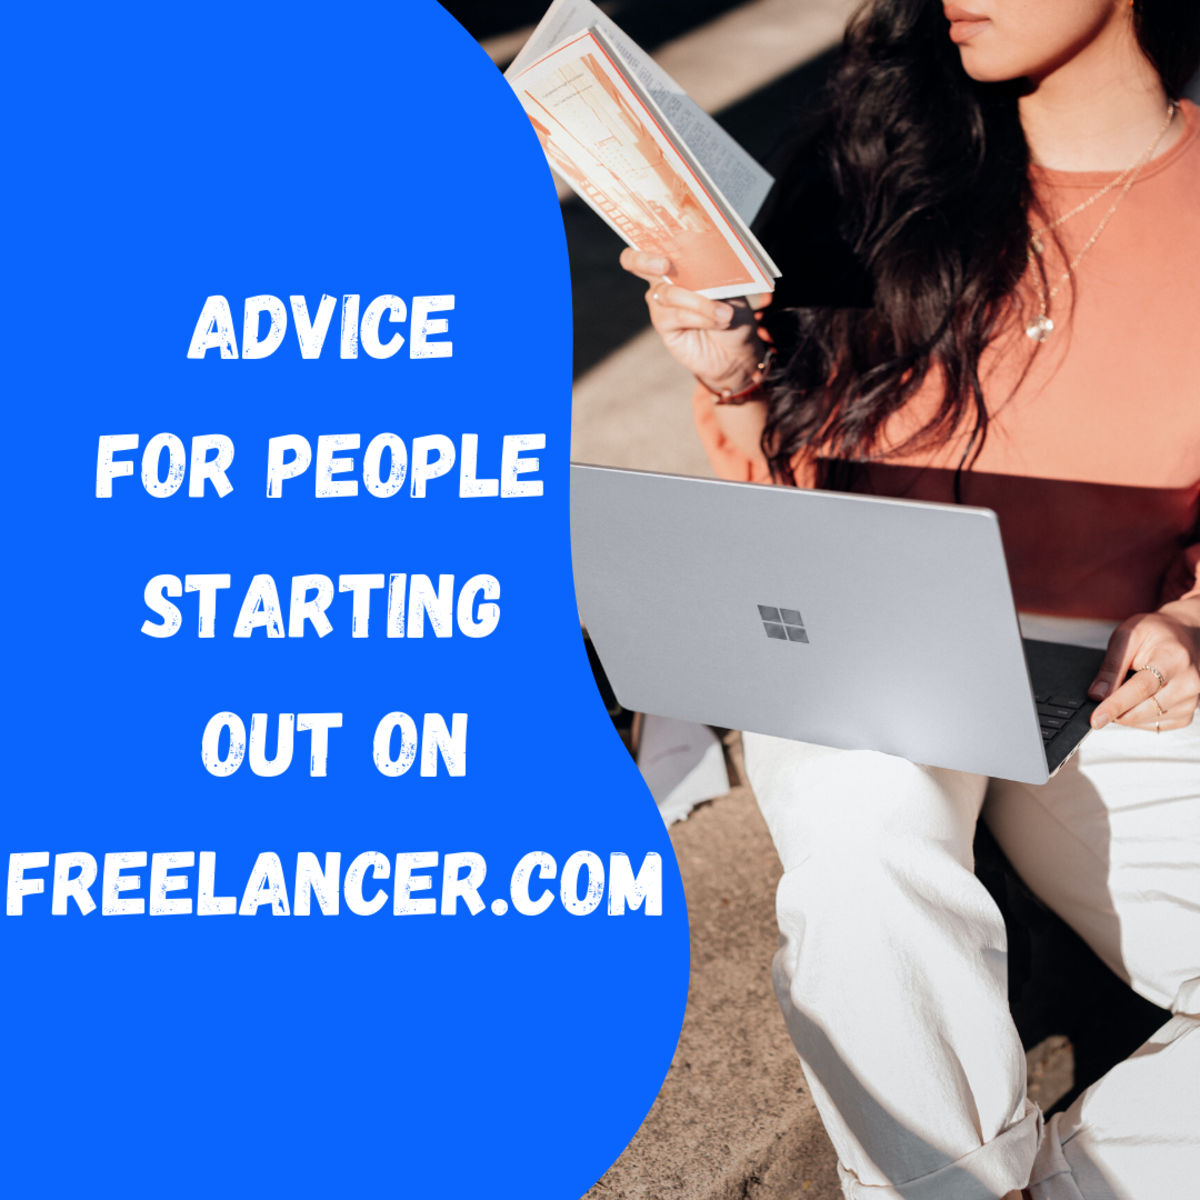 10 Words of Advice for People Starting Out on Freelancer.com